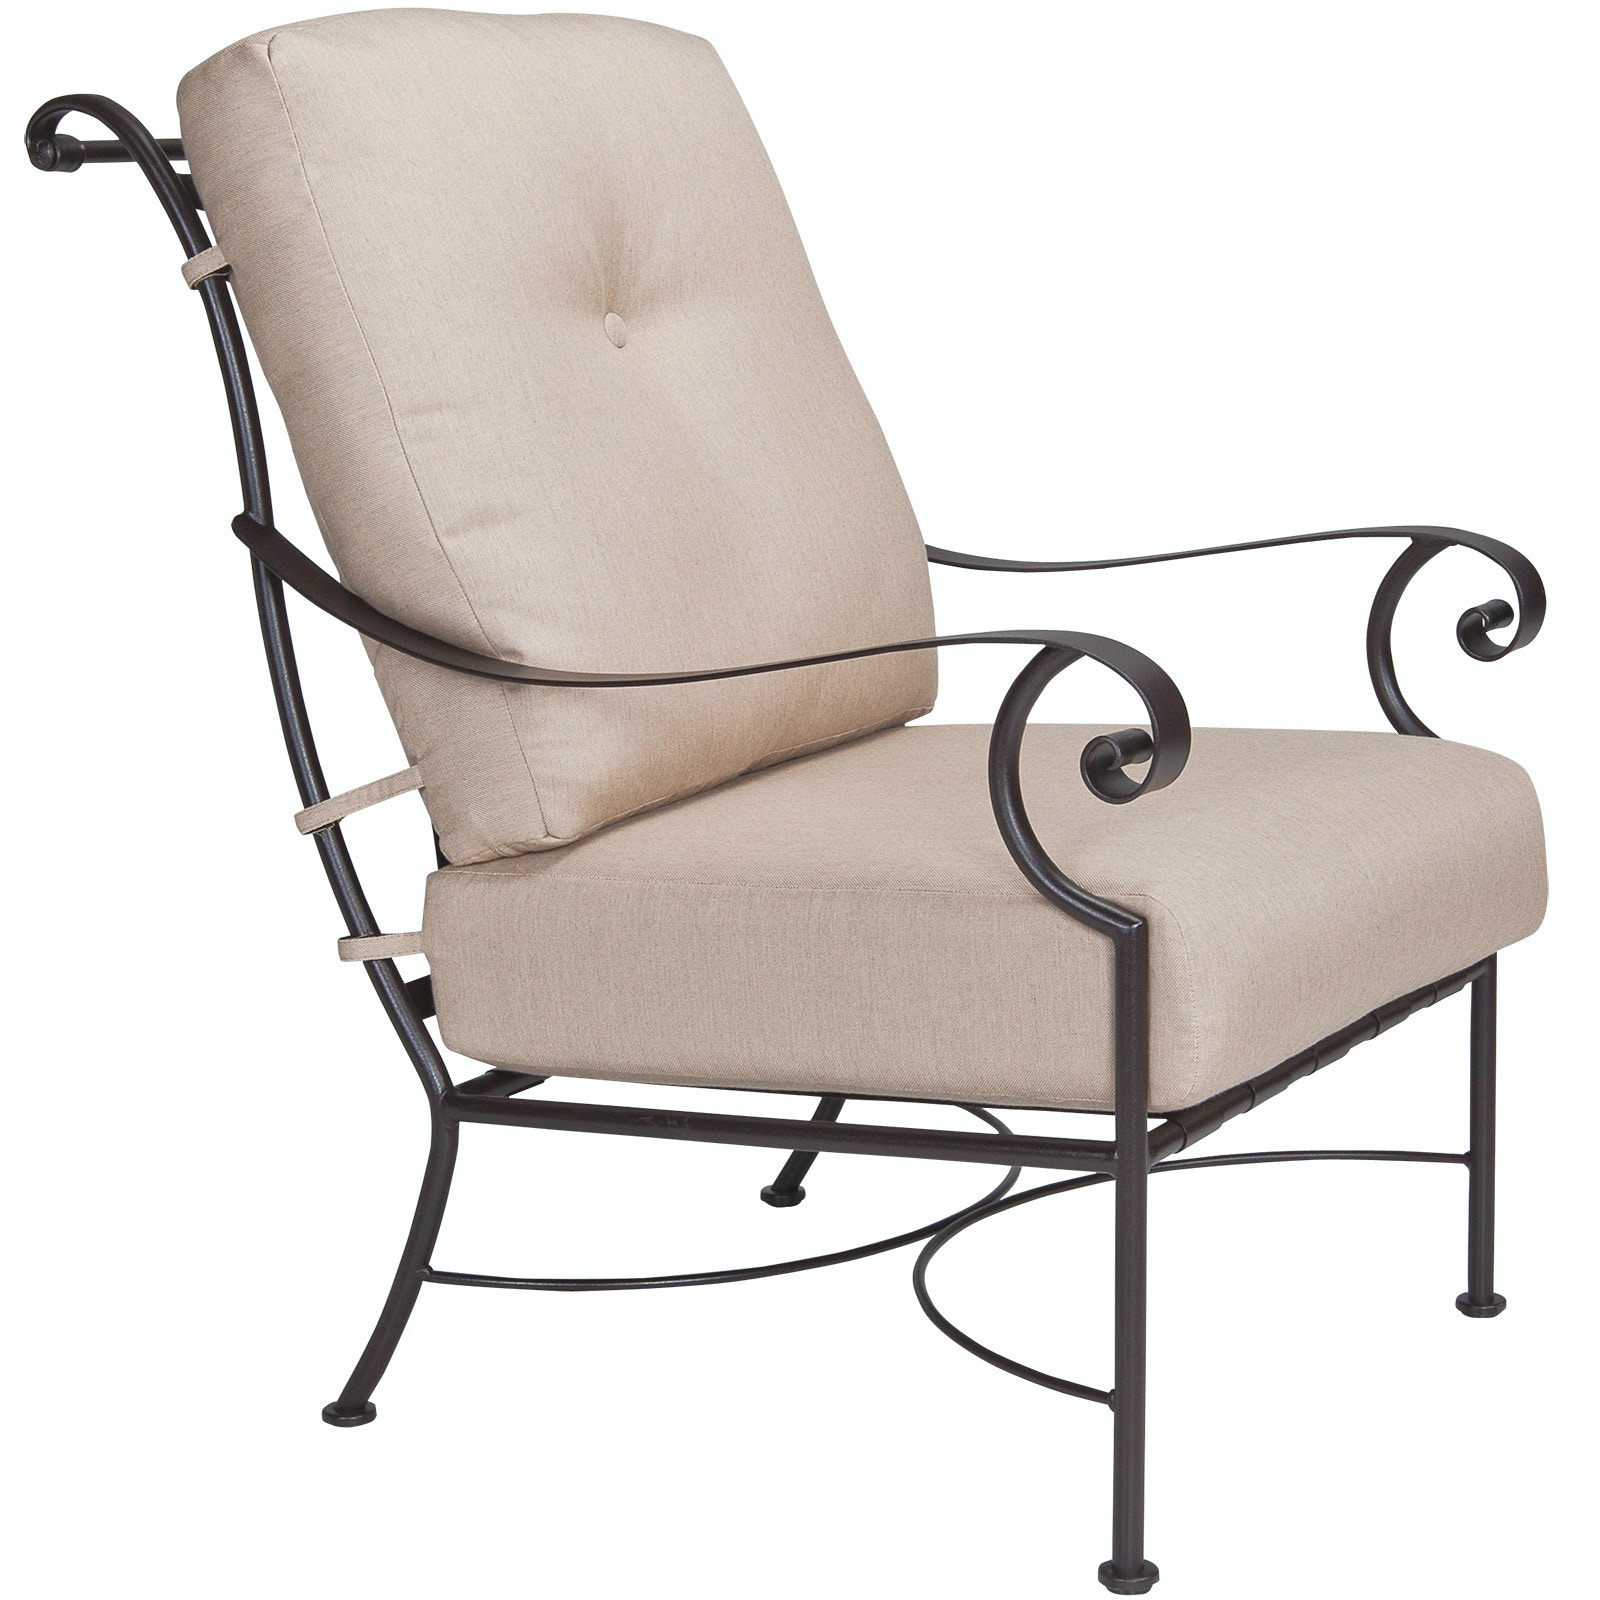 OW Lee Furniture St. Charles Lounge Chair 26125 CC